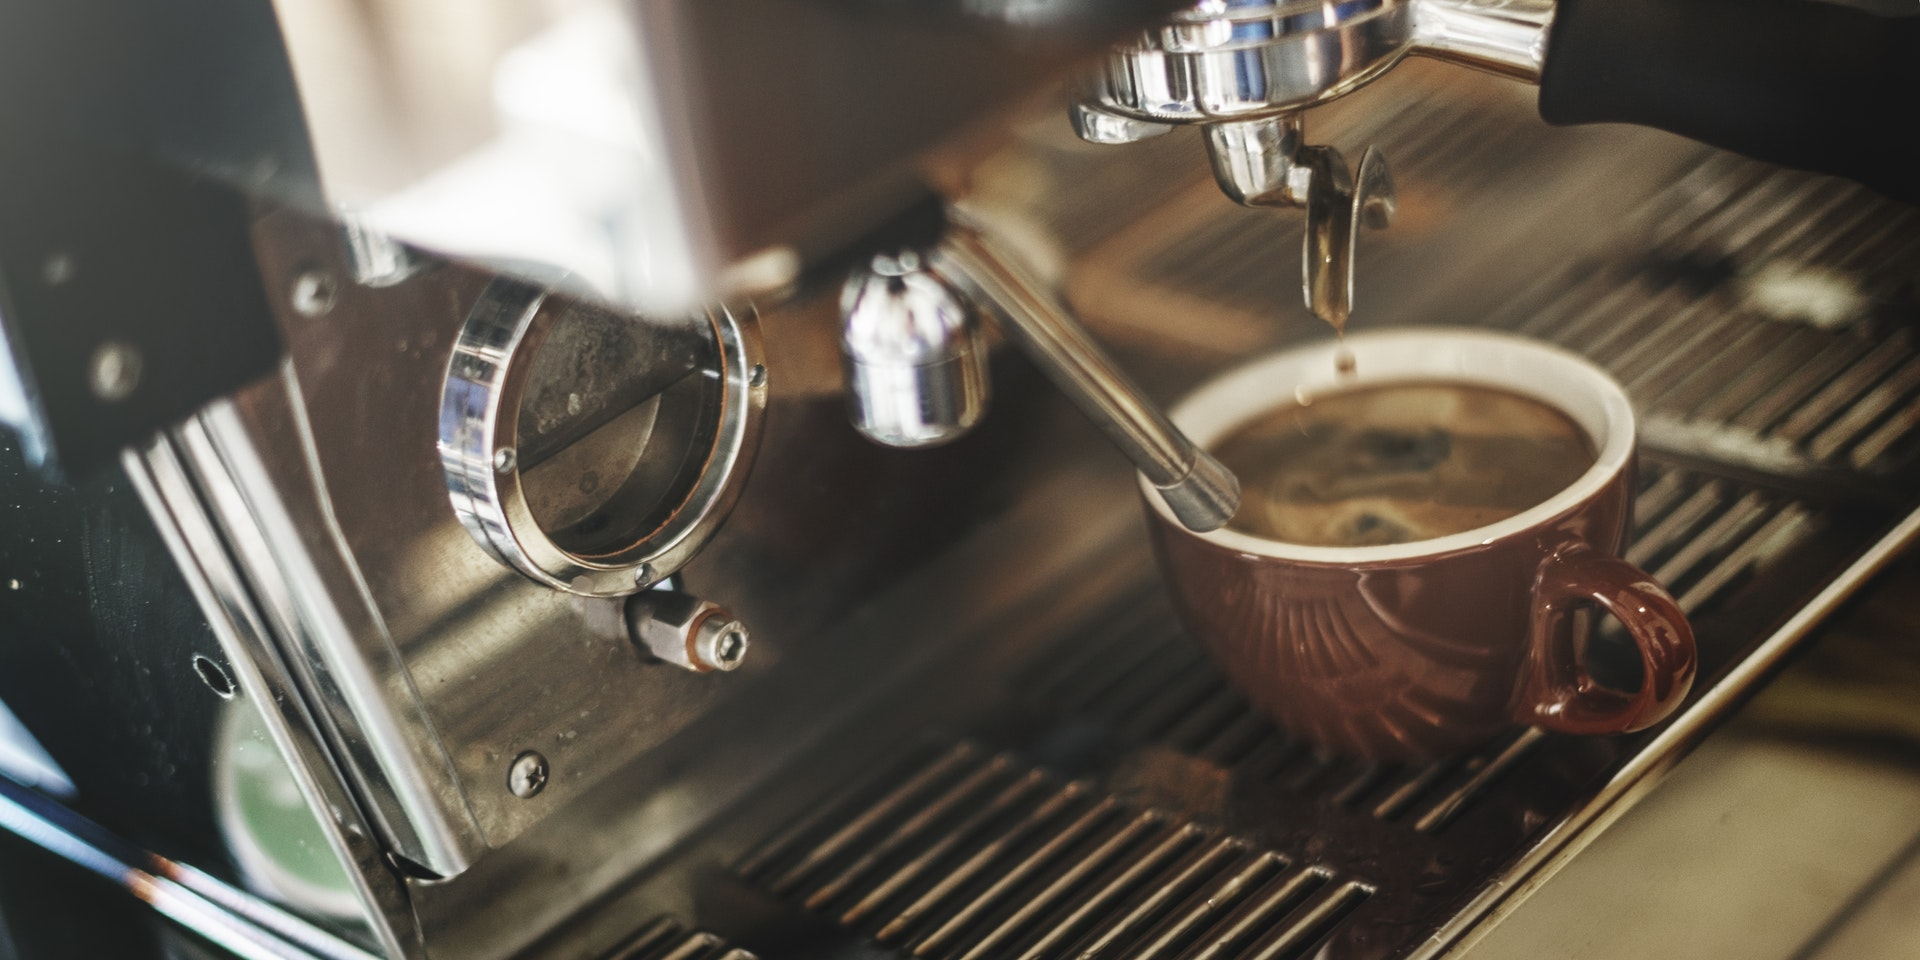 5 Best Local Coffee Shops in Forsyth County